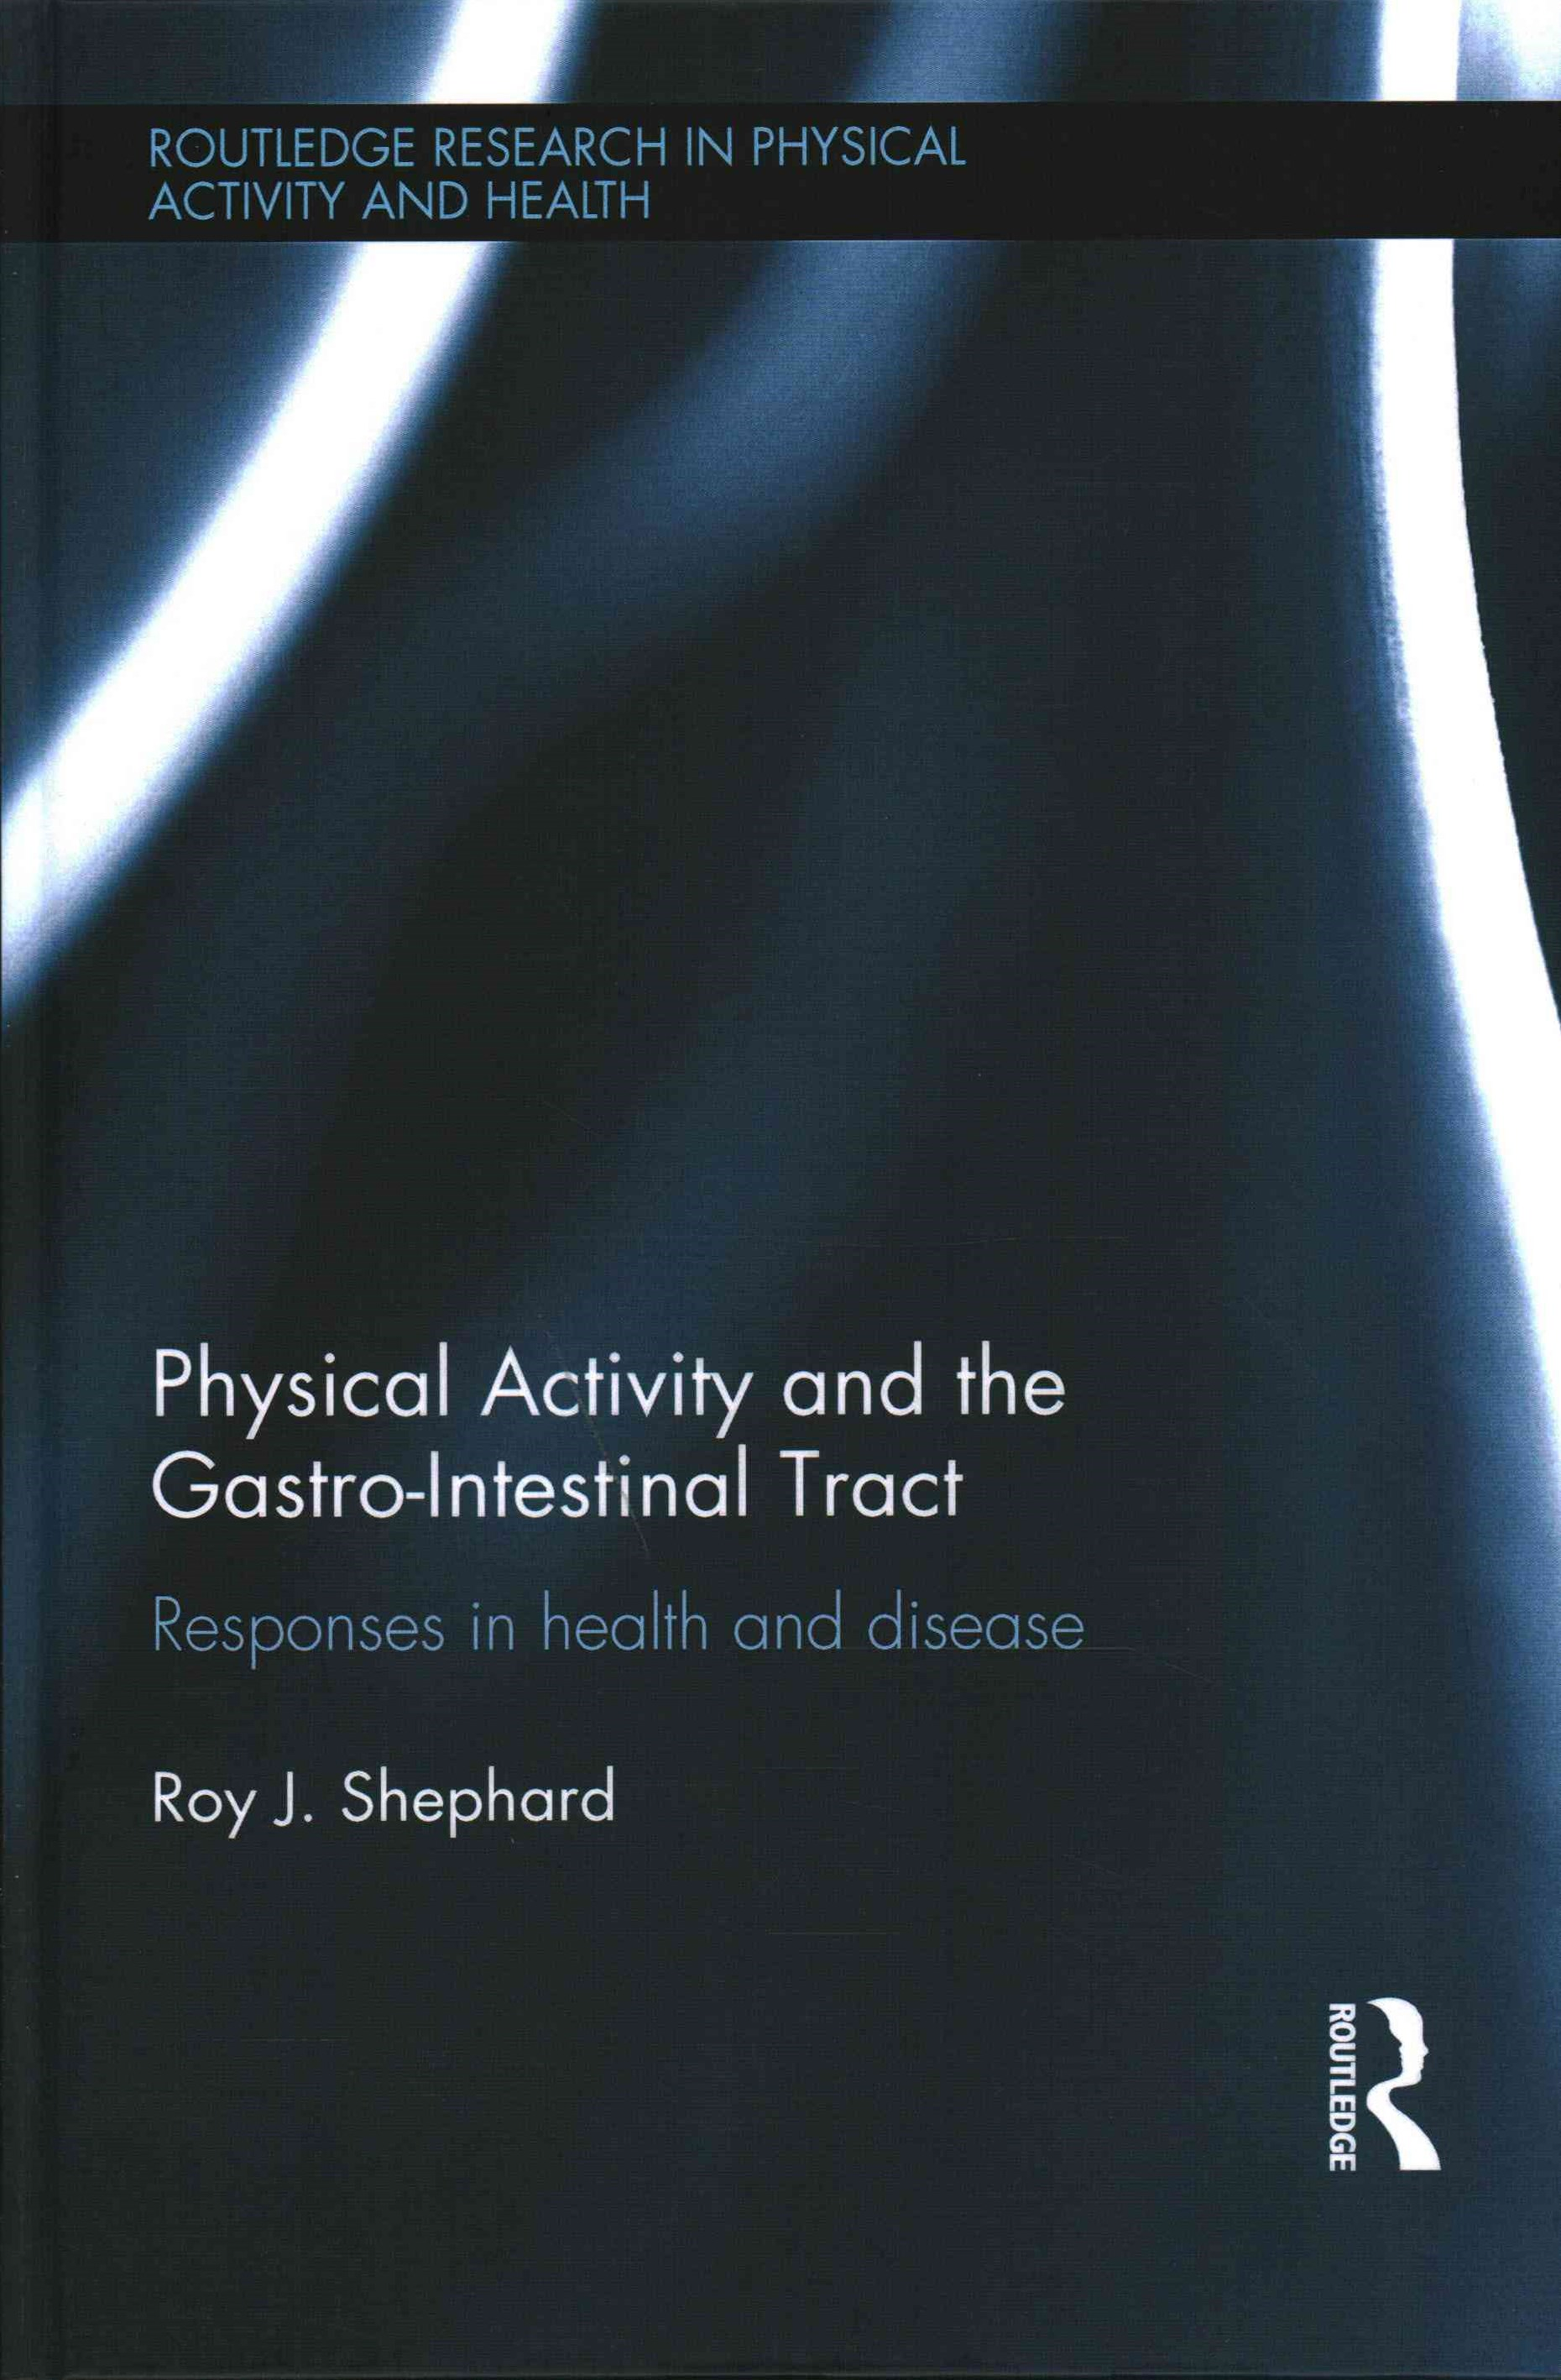 Physical Activity and the Gastro-Intestinal Tract